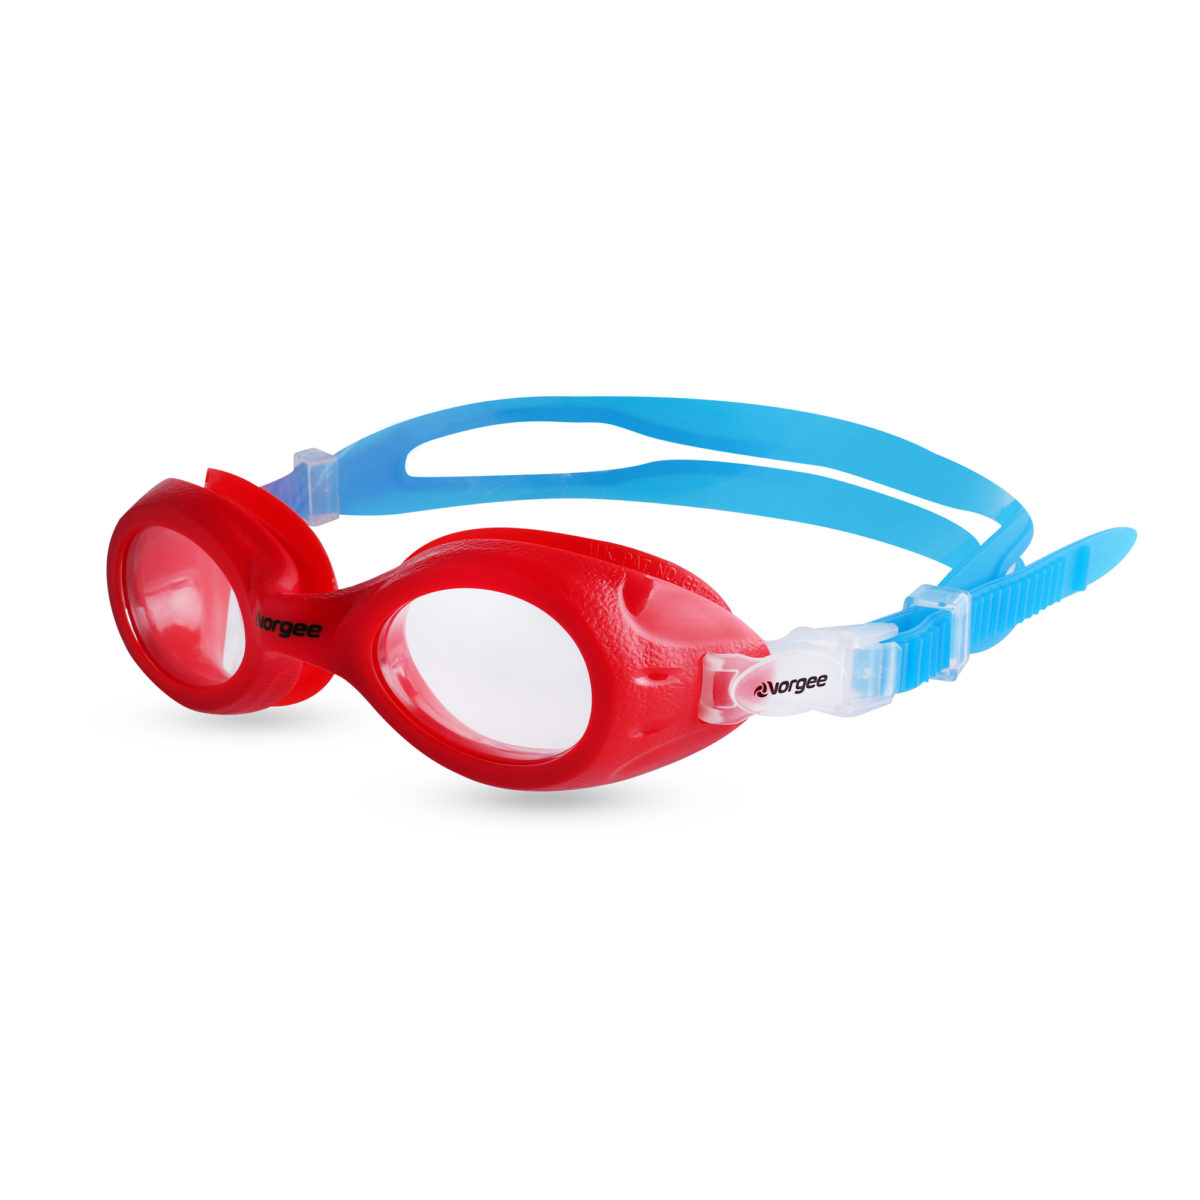 Voyager Jnr Clear - red & blue